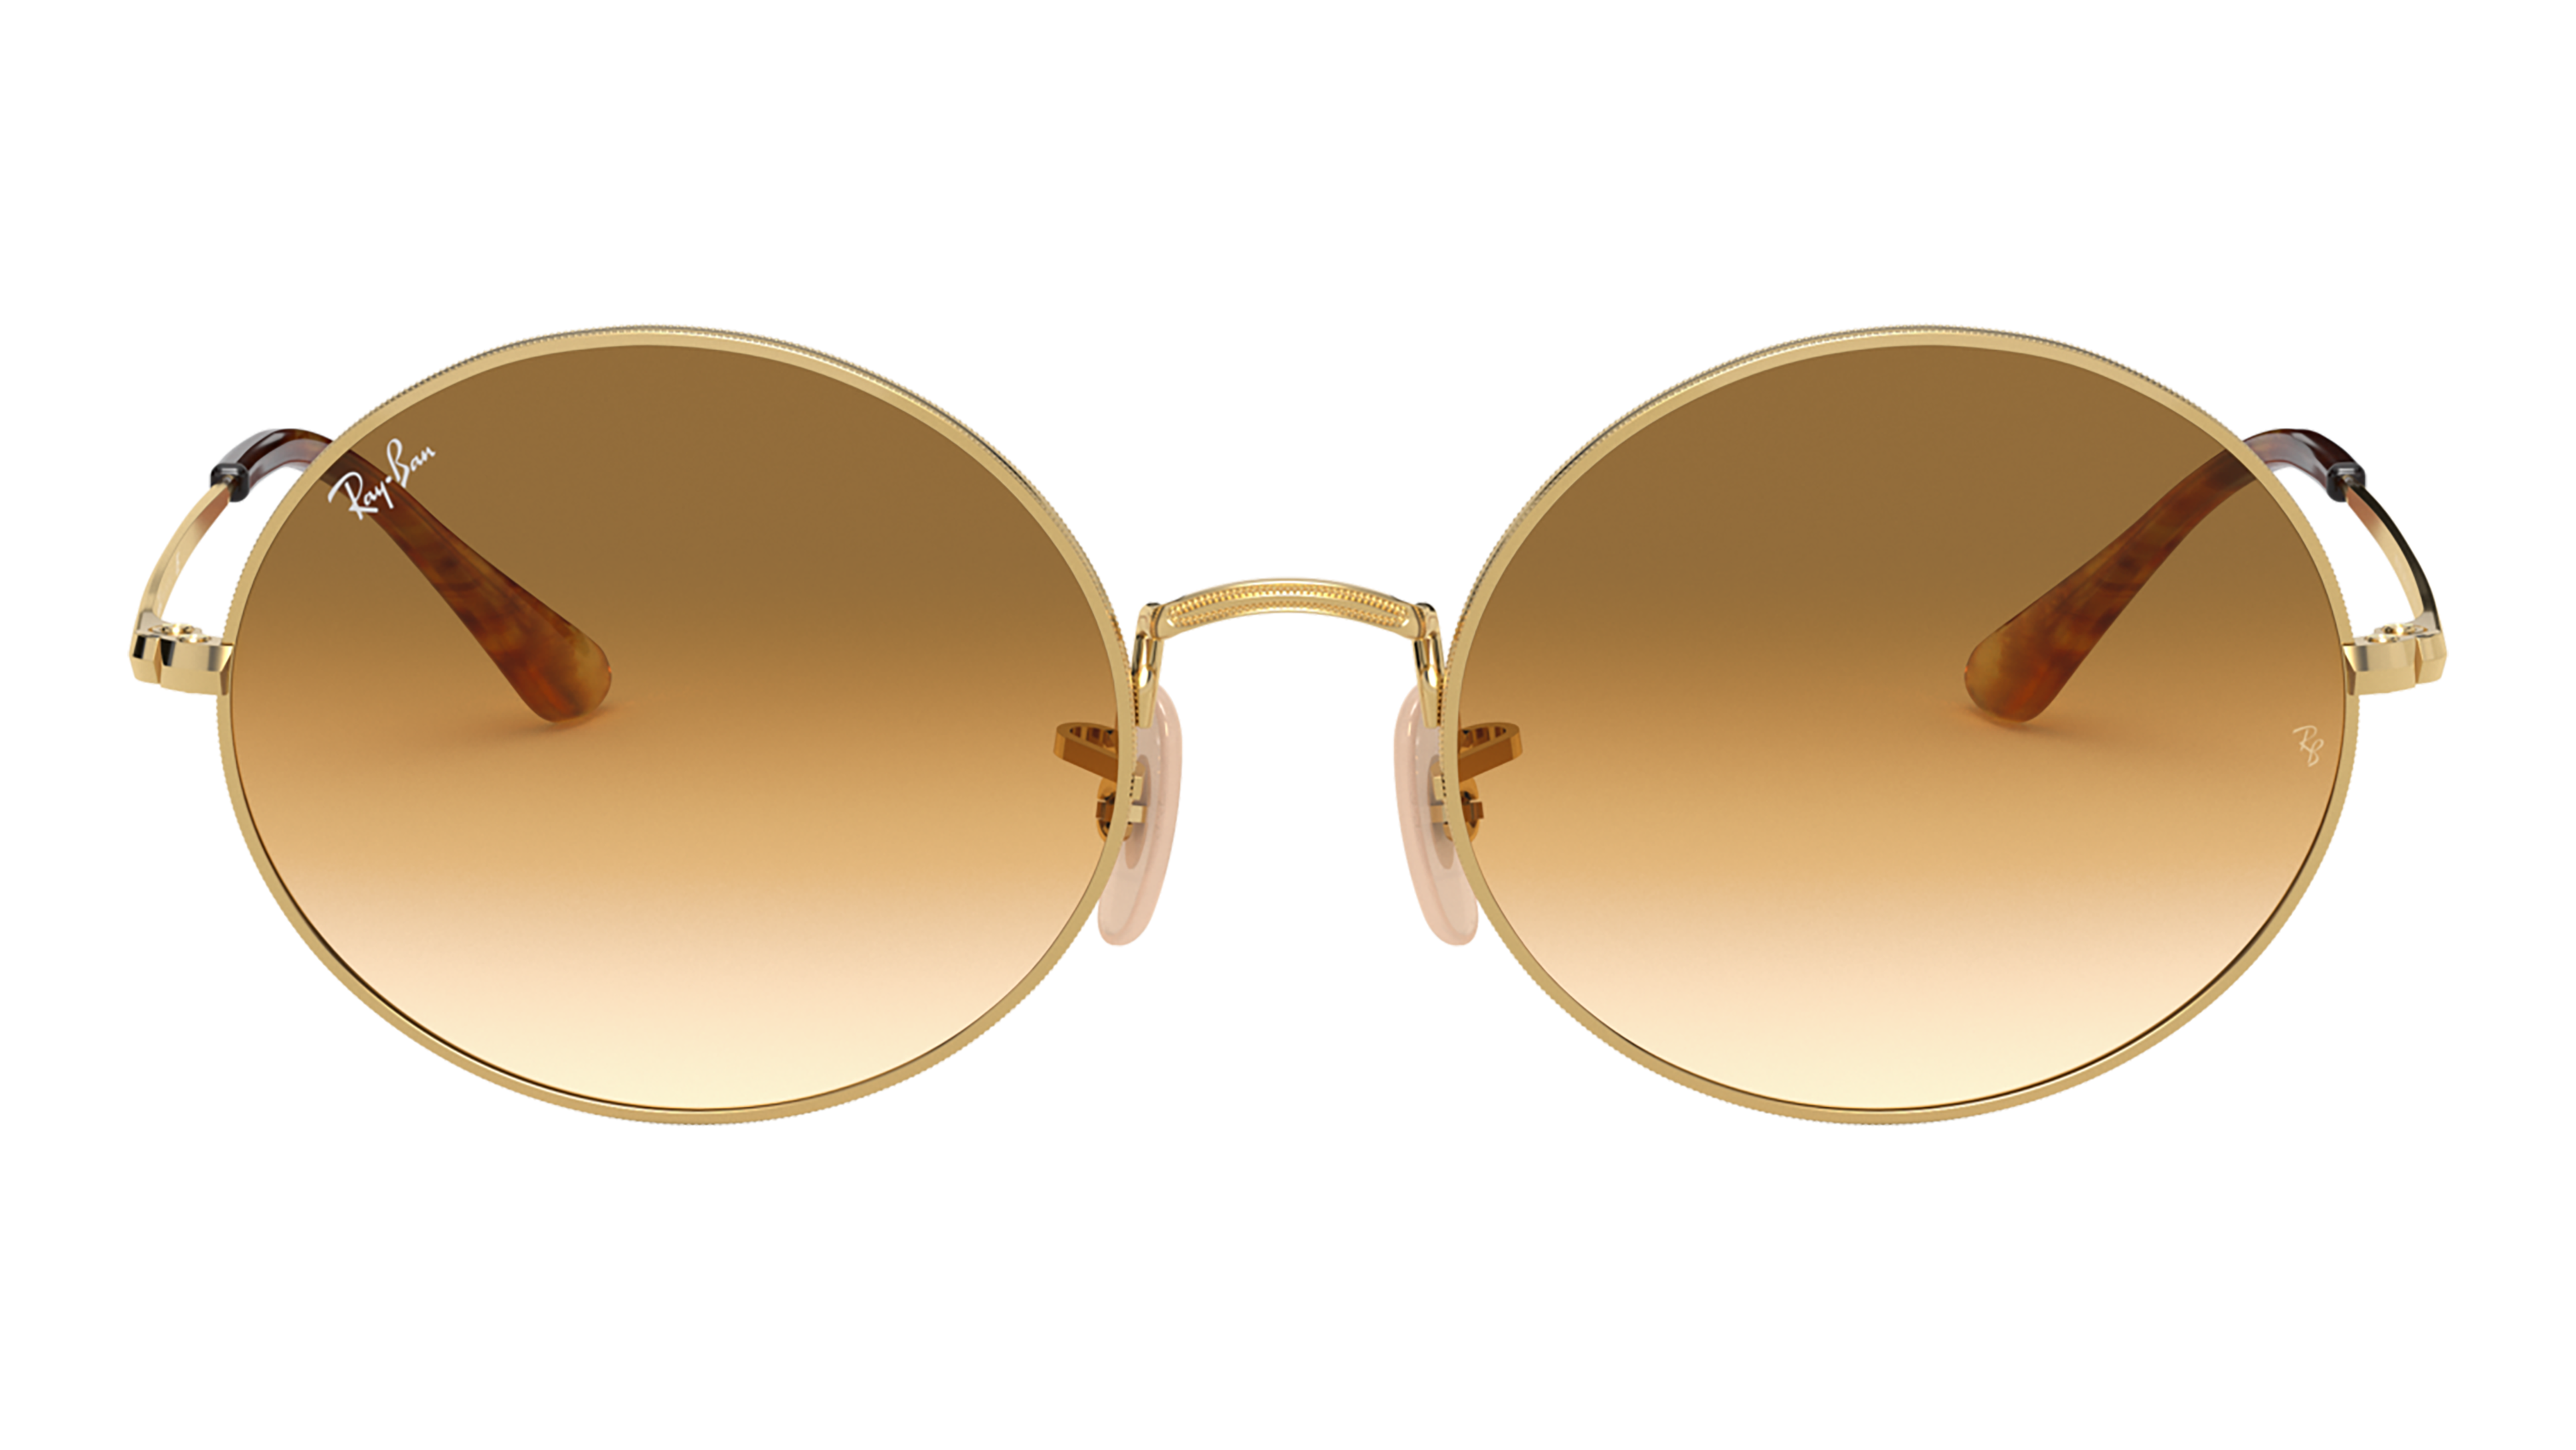 Front Ray-Ban Ray-Ban 0RB1970 914751 53/19 Goud/Bruin